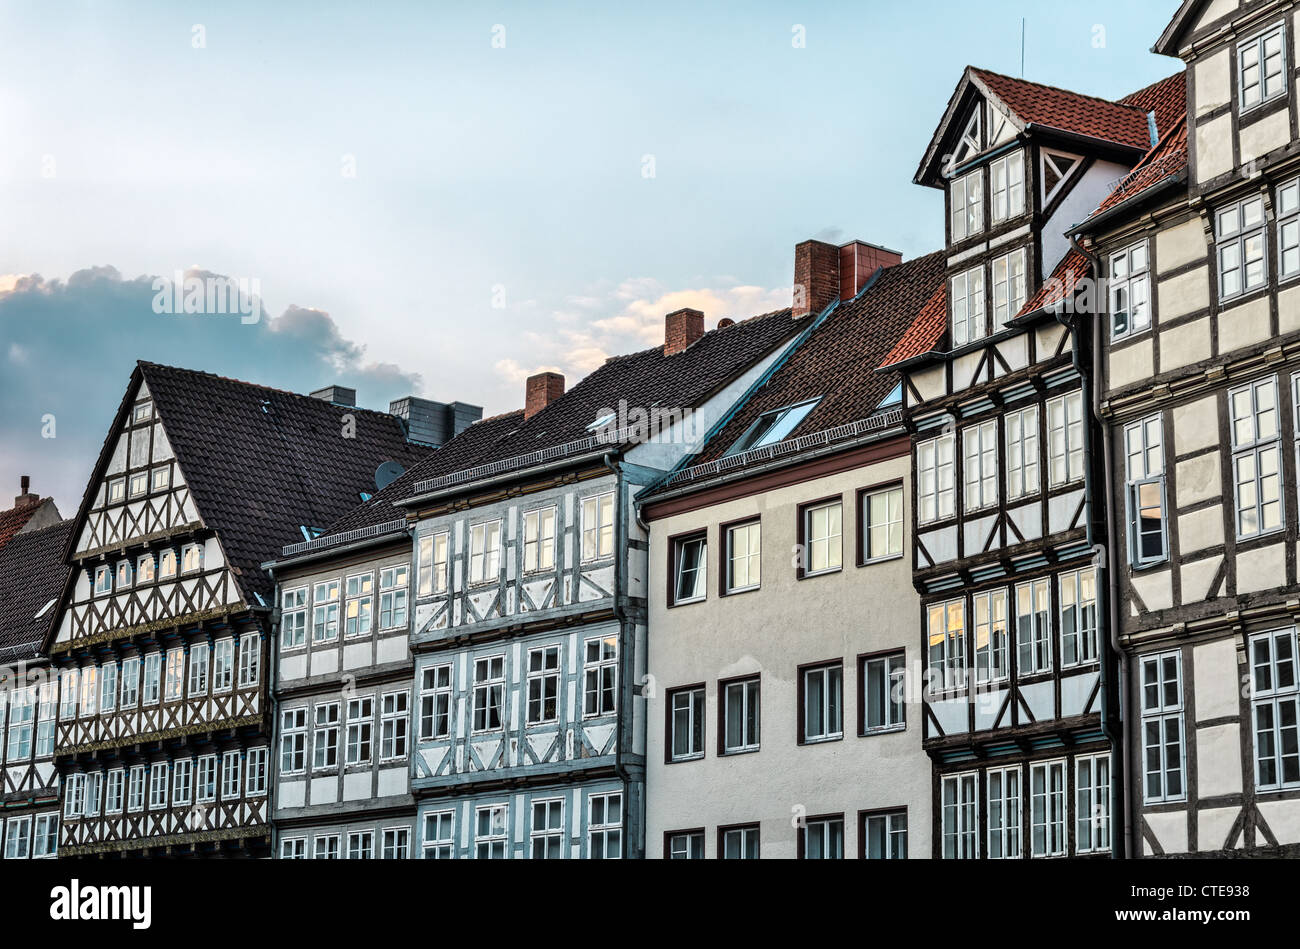 Fronts of typical half-timbered houses in the old town of Hannover, Germany - Stock Image